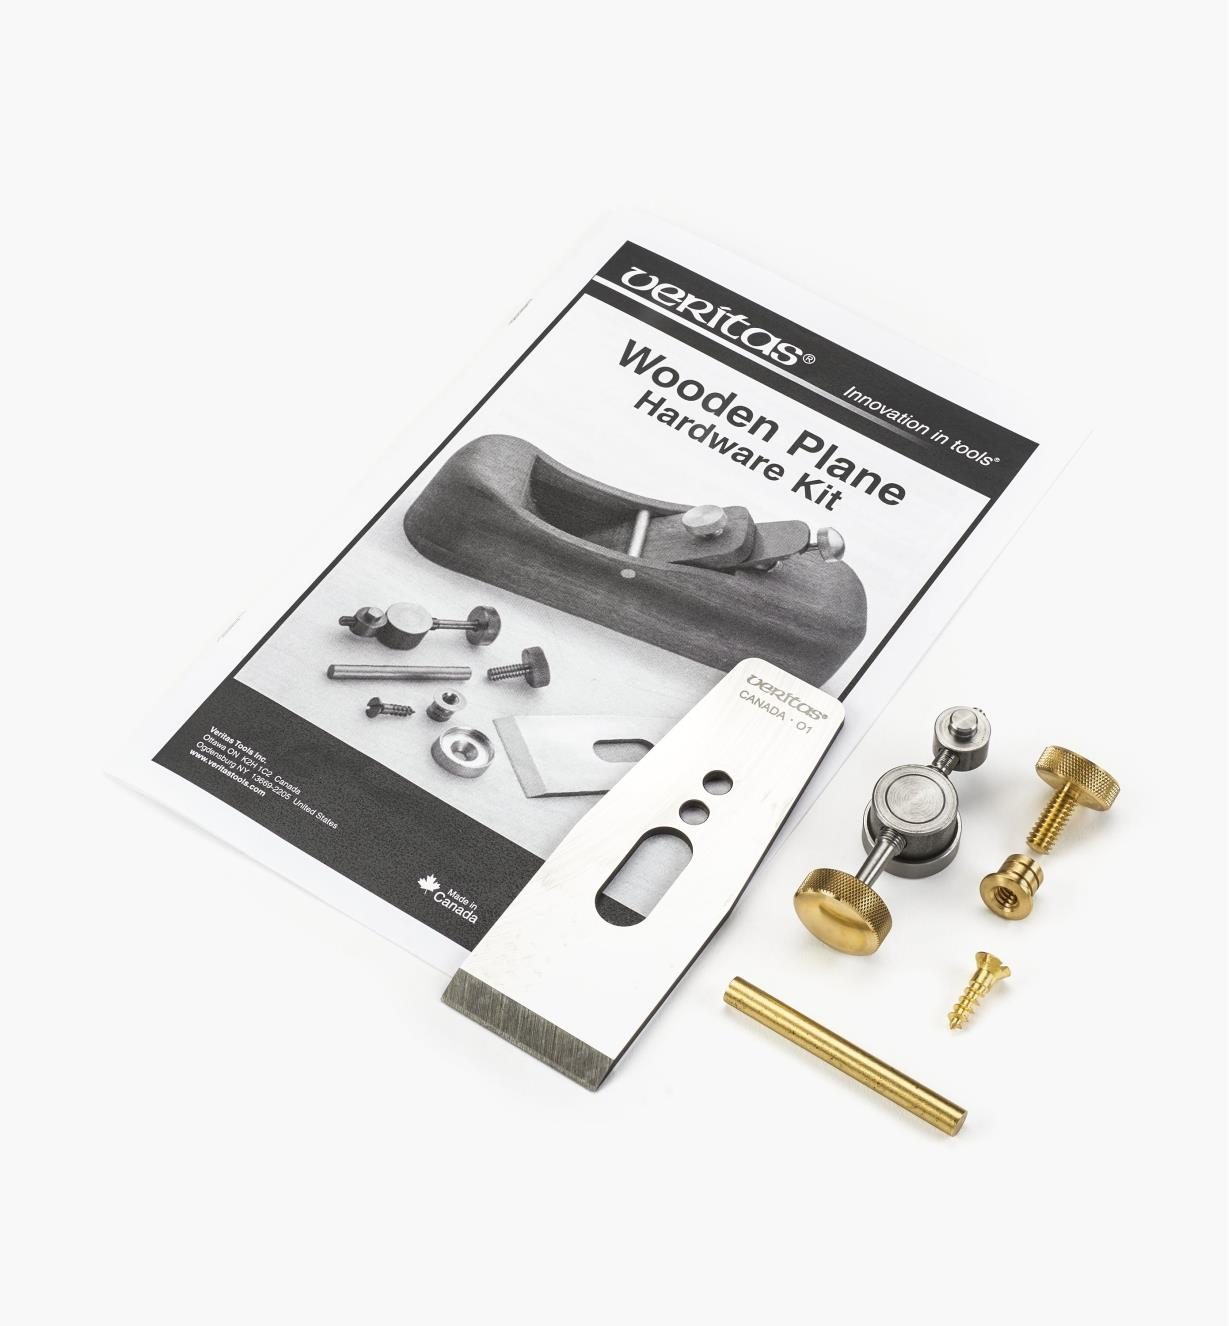 05P4041 - Veritas Wooden Plane Hardware Kit with A2 Blade